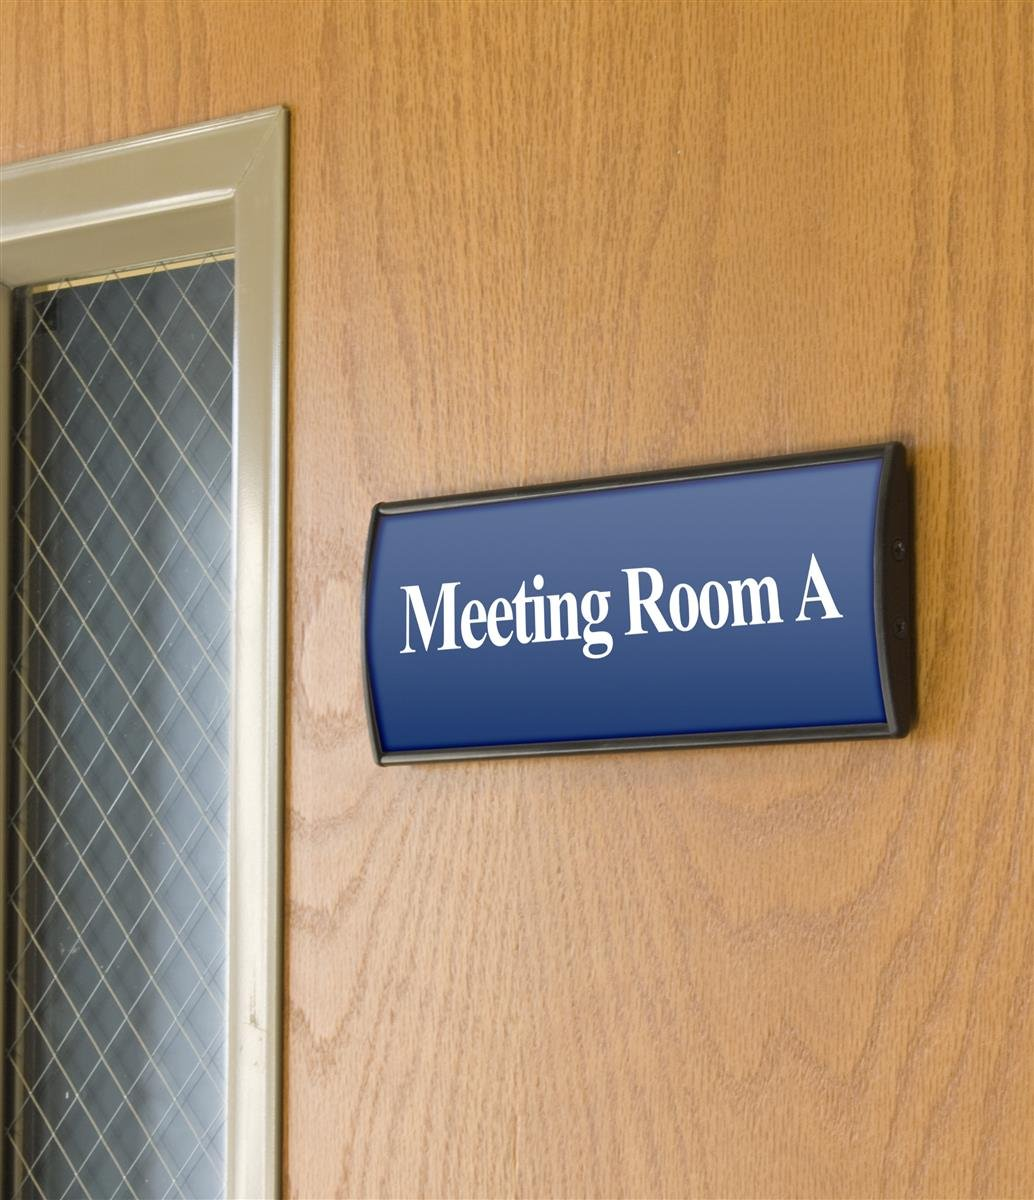 Displays2go Set of 5, Office Sign Holders for Wall Mount, Curved Name Plate Frames for 3 x 8 Inches Signage, Includes Double-Sided Adhesive for Mounting, Aluminum, Black (WCSBK38)